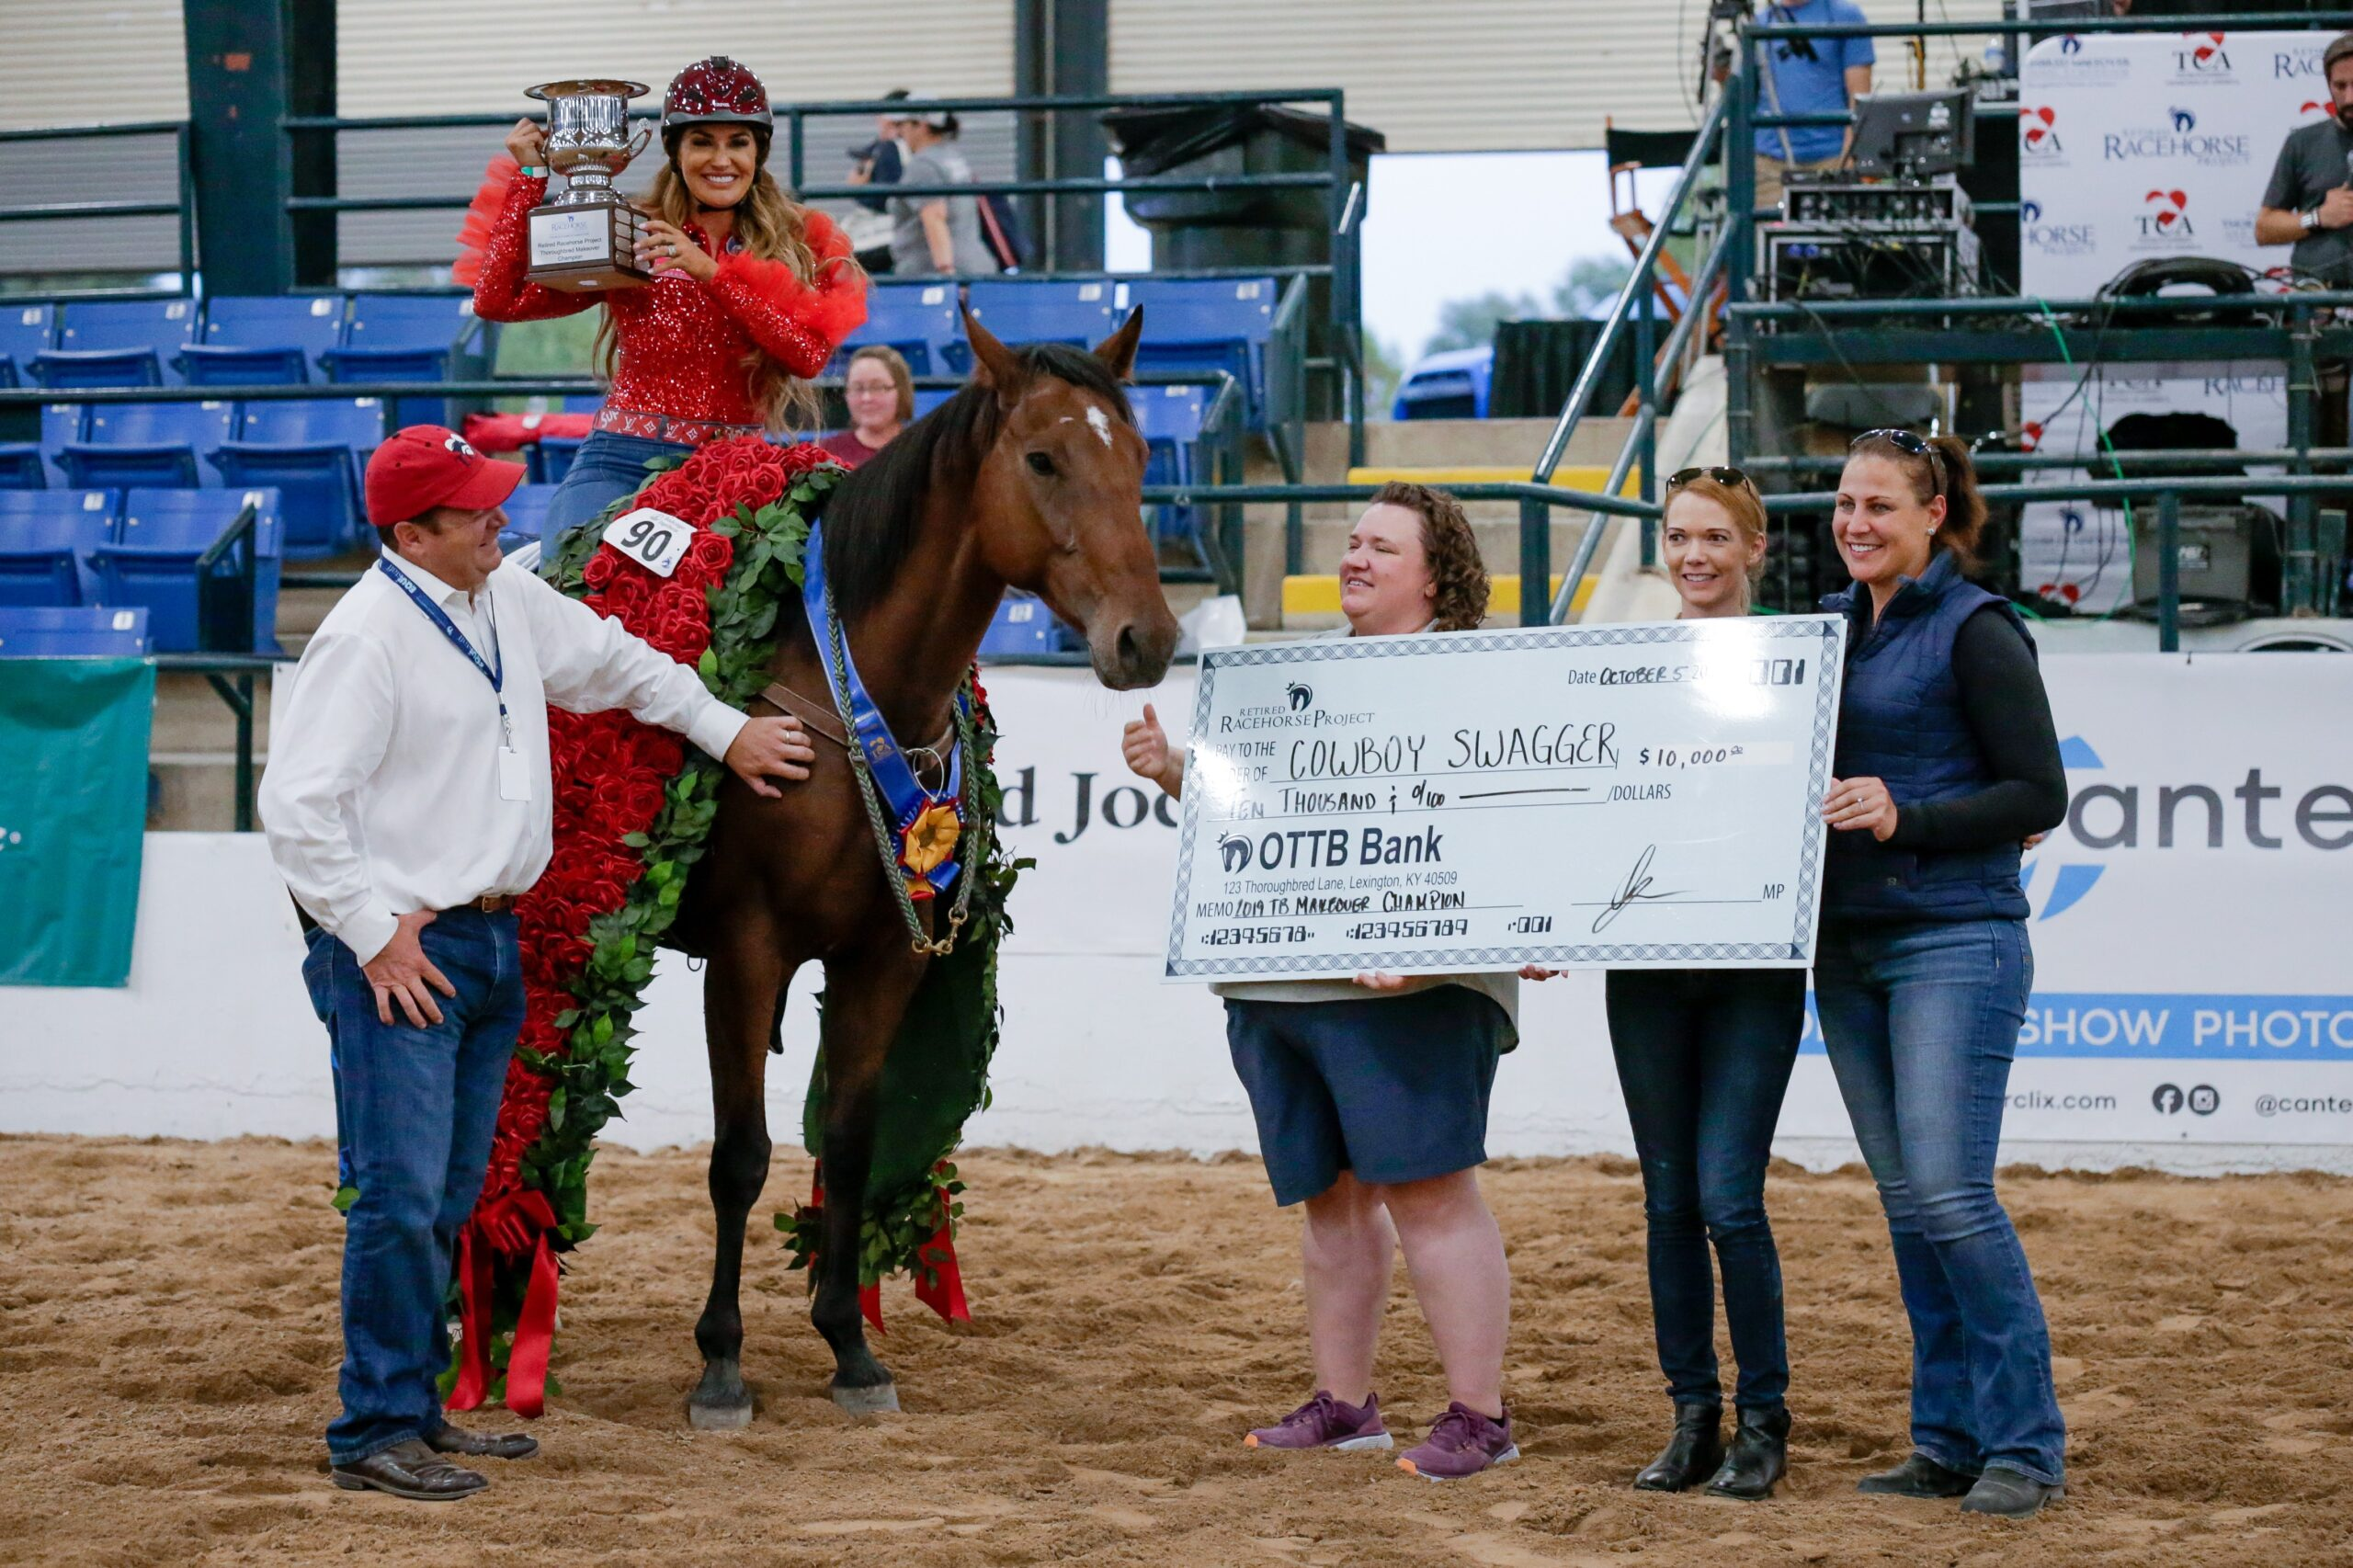 2020 THOROUGHBRED EDUCATION AND RESEARCH FOUNDATION  AWARDS $4000 TO  RETIRED RACEHORSE PROJECT